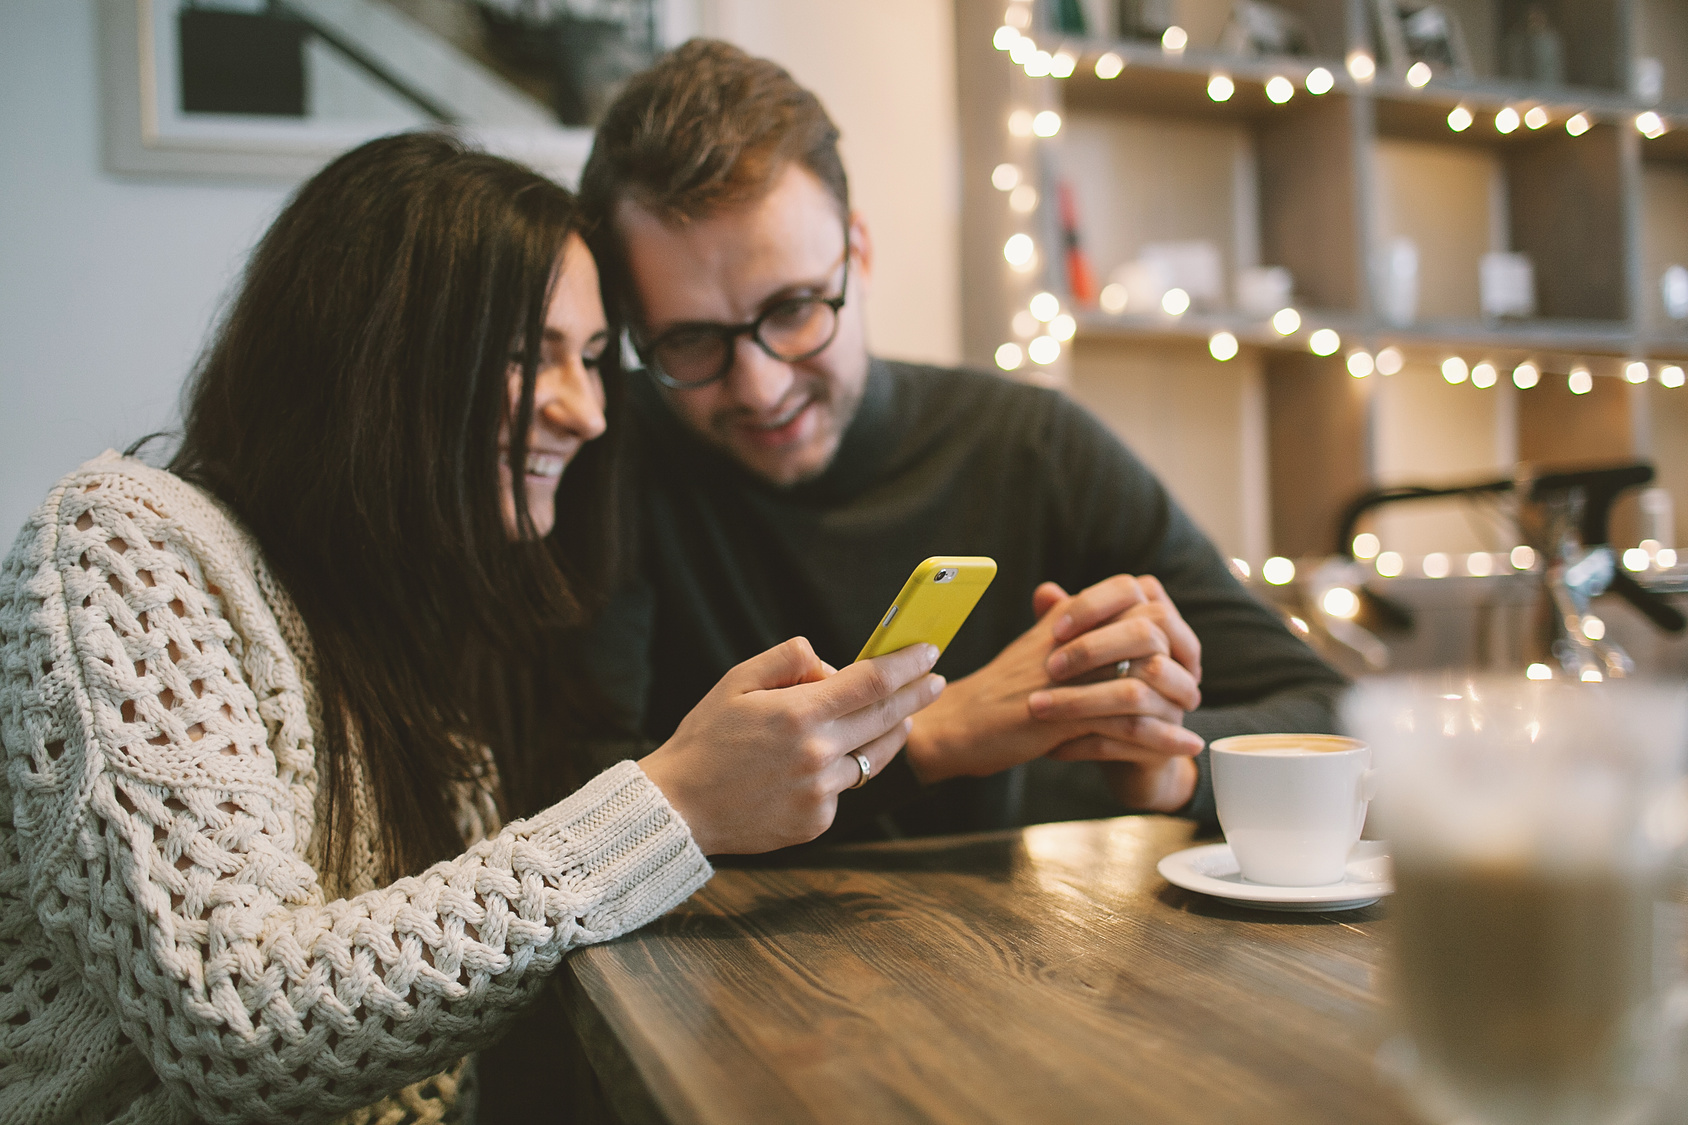 Young couple in cafe sitting with smartphone and coffee